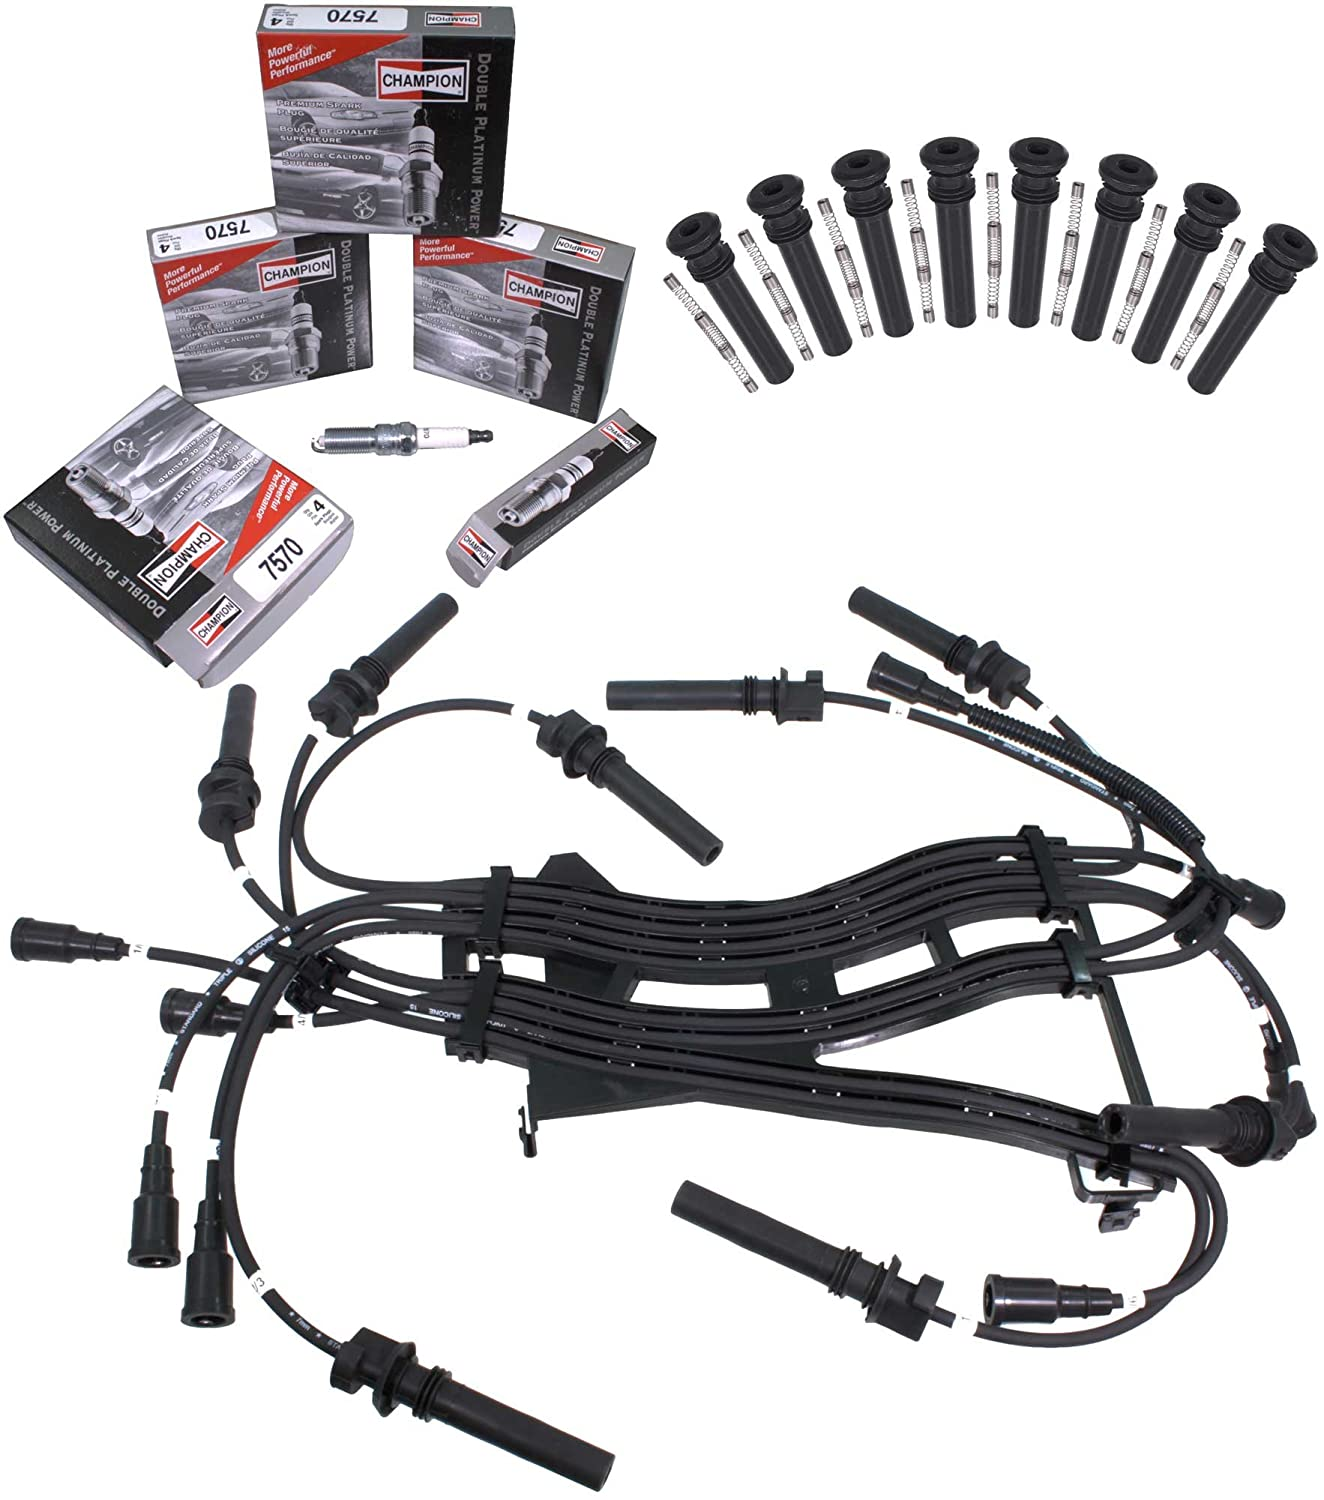 2004 Dodge Ram Hemi Spark Plug Wire Diagram 43 Wiring 2005 Durango 81djnyzzpzl Sl1500 Amazon Com Apdty Tune Up Kit Includes 16 Oem Plugs